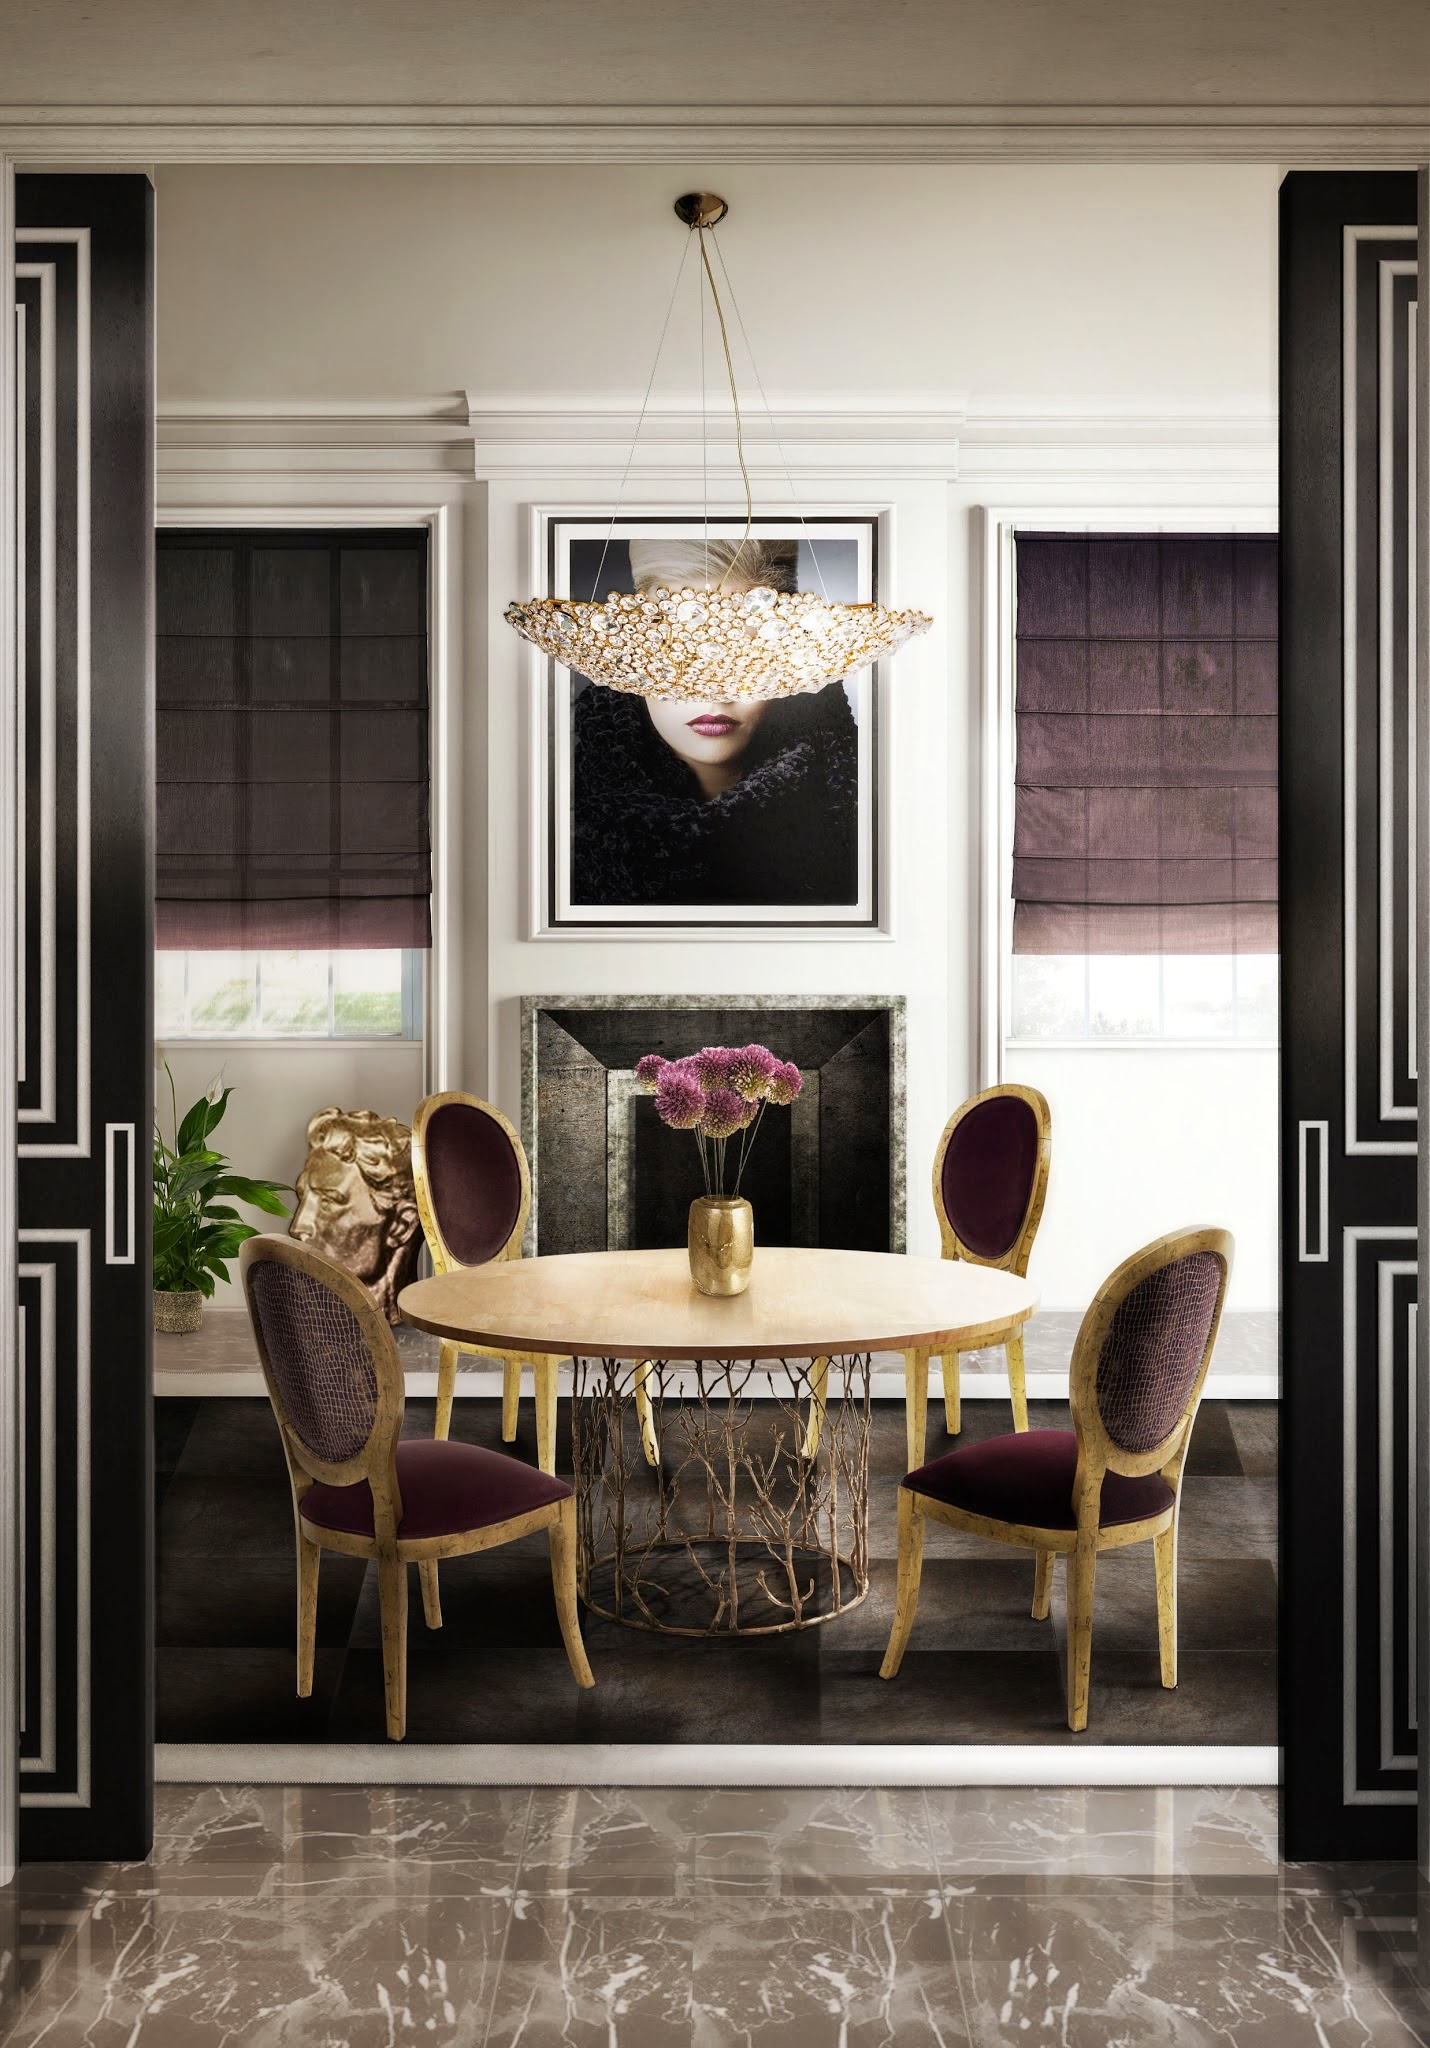 enchanted-dining-table-eternity-chandelier-diamantra-dining-chair-koket-projects design pieces 10 Gorgeous Design Pieces to Create the Perfect Dining Room enchanted dining table eternity chandelier diamantra dining chair koket projects